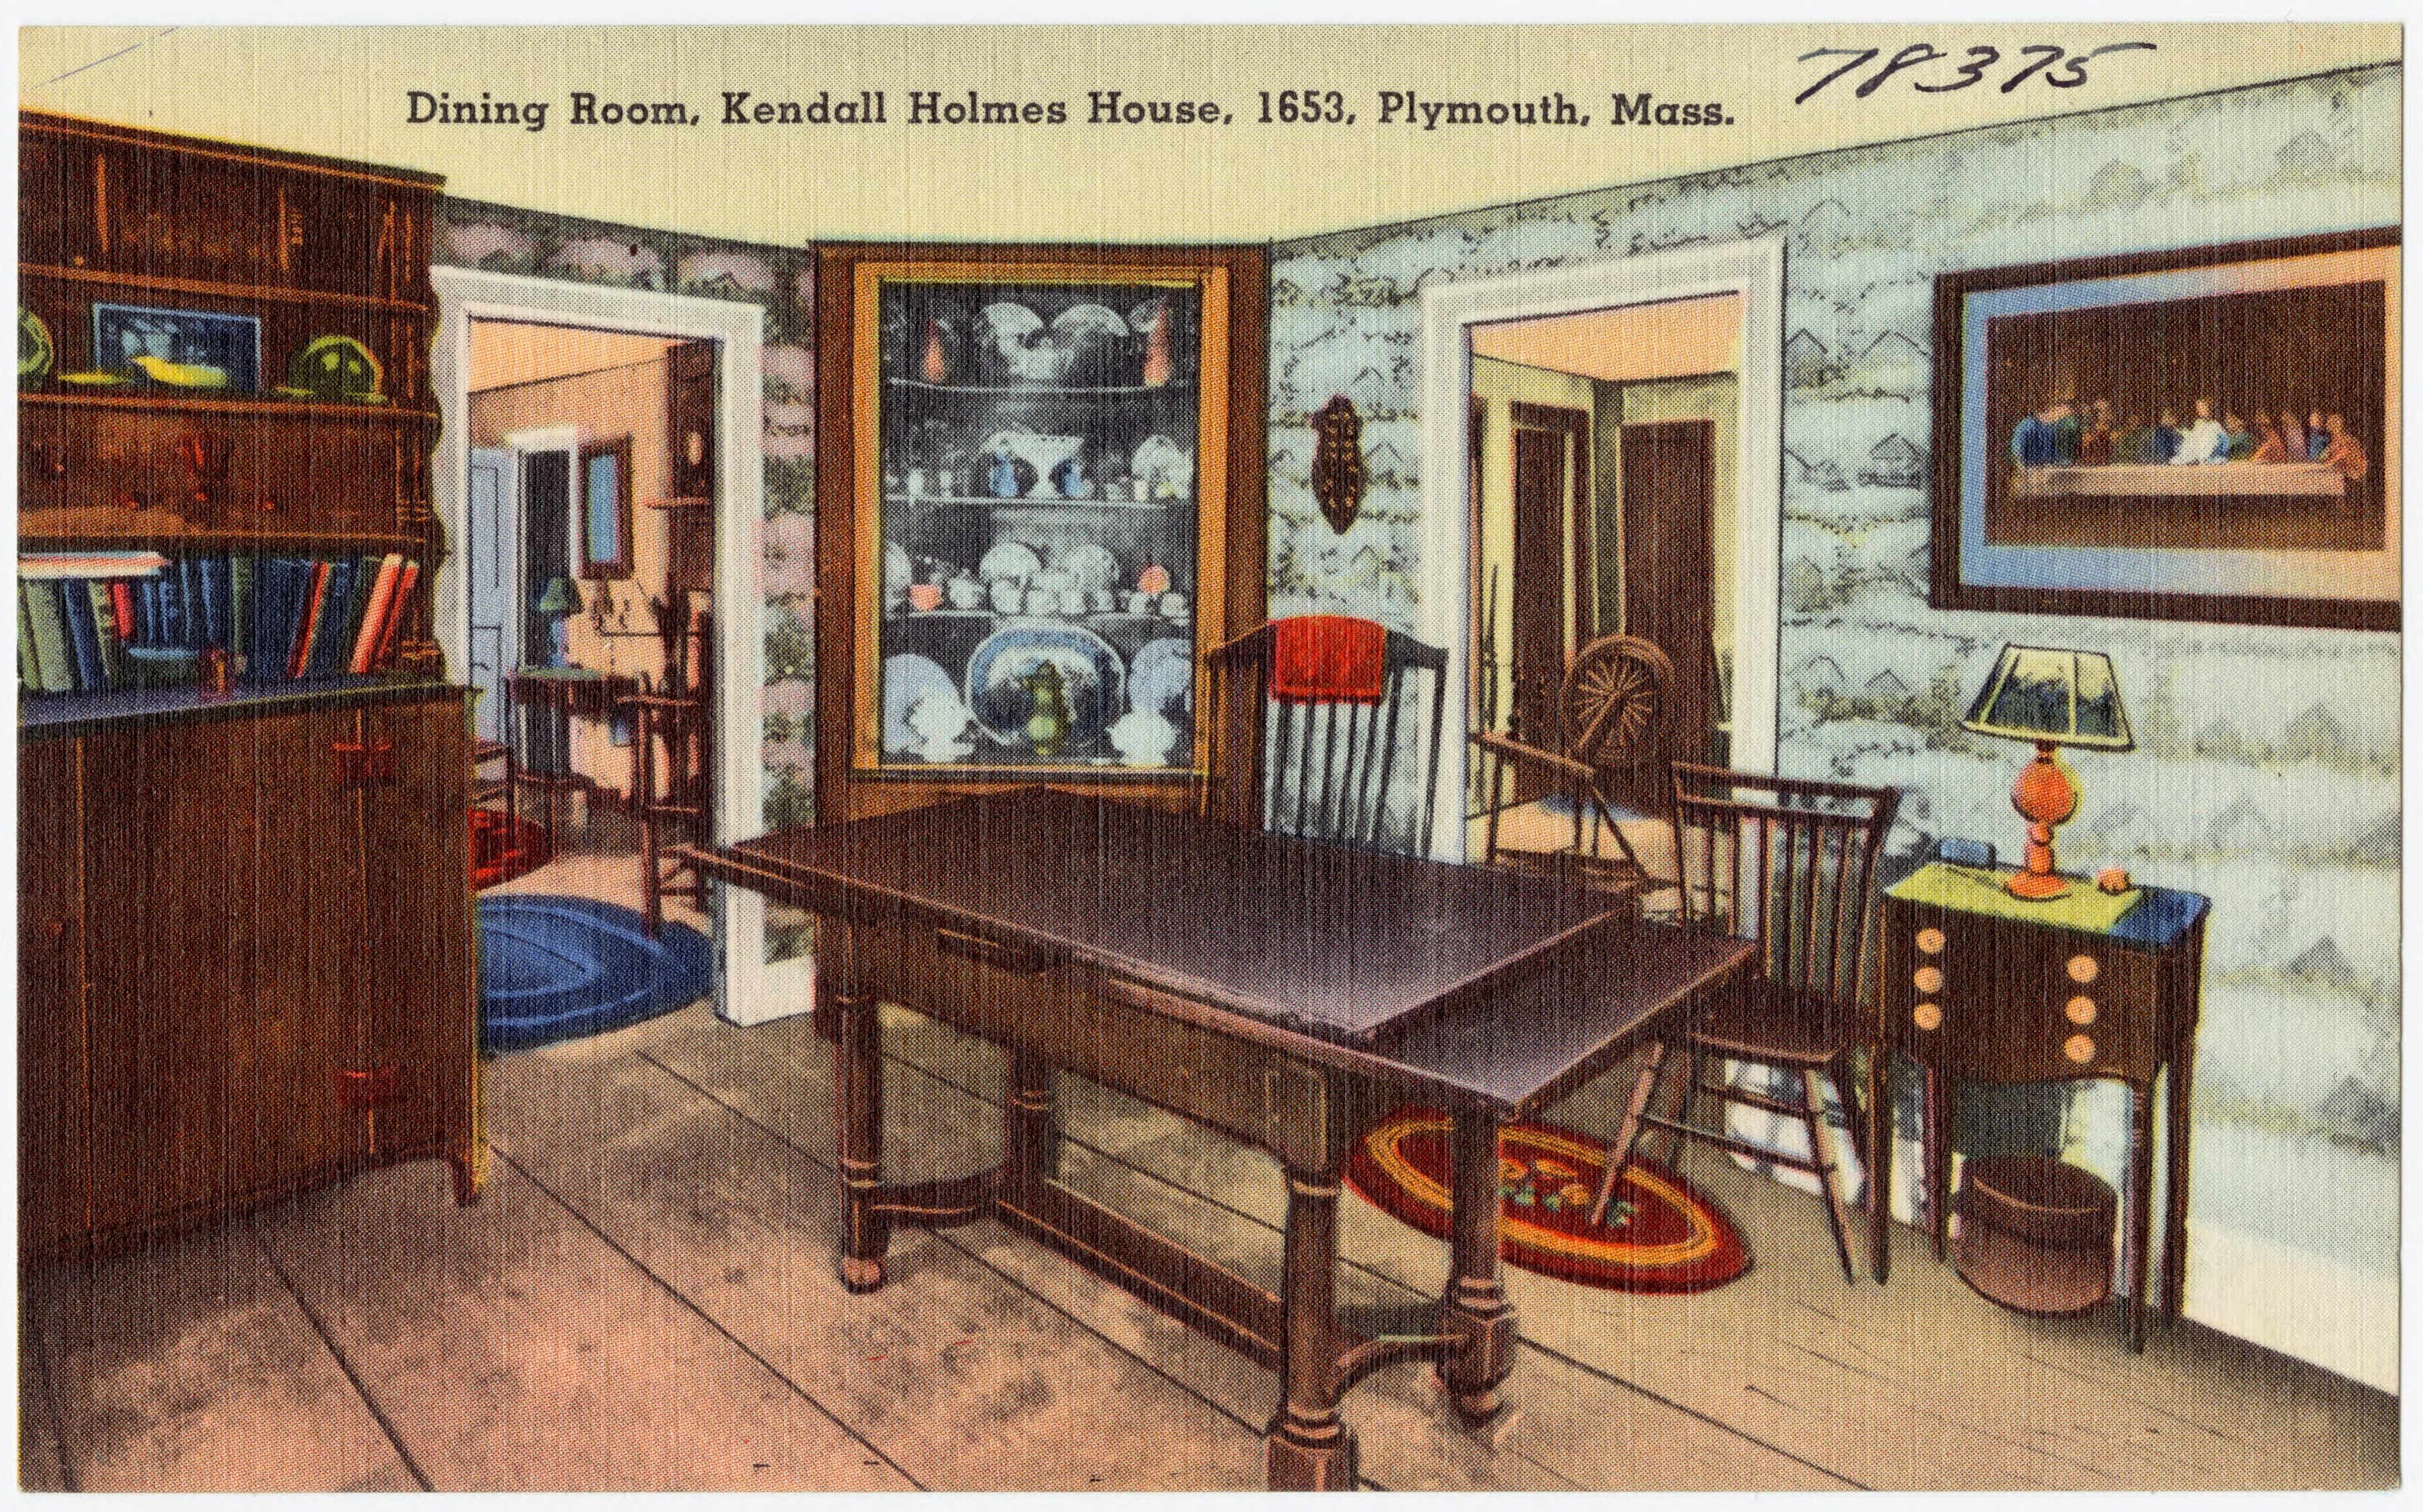 FileDining Room Kendall Holmes House 1653 Plymouth Mass 78375